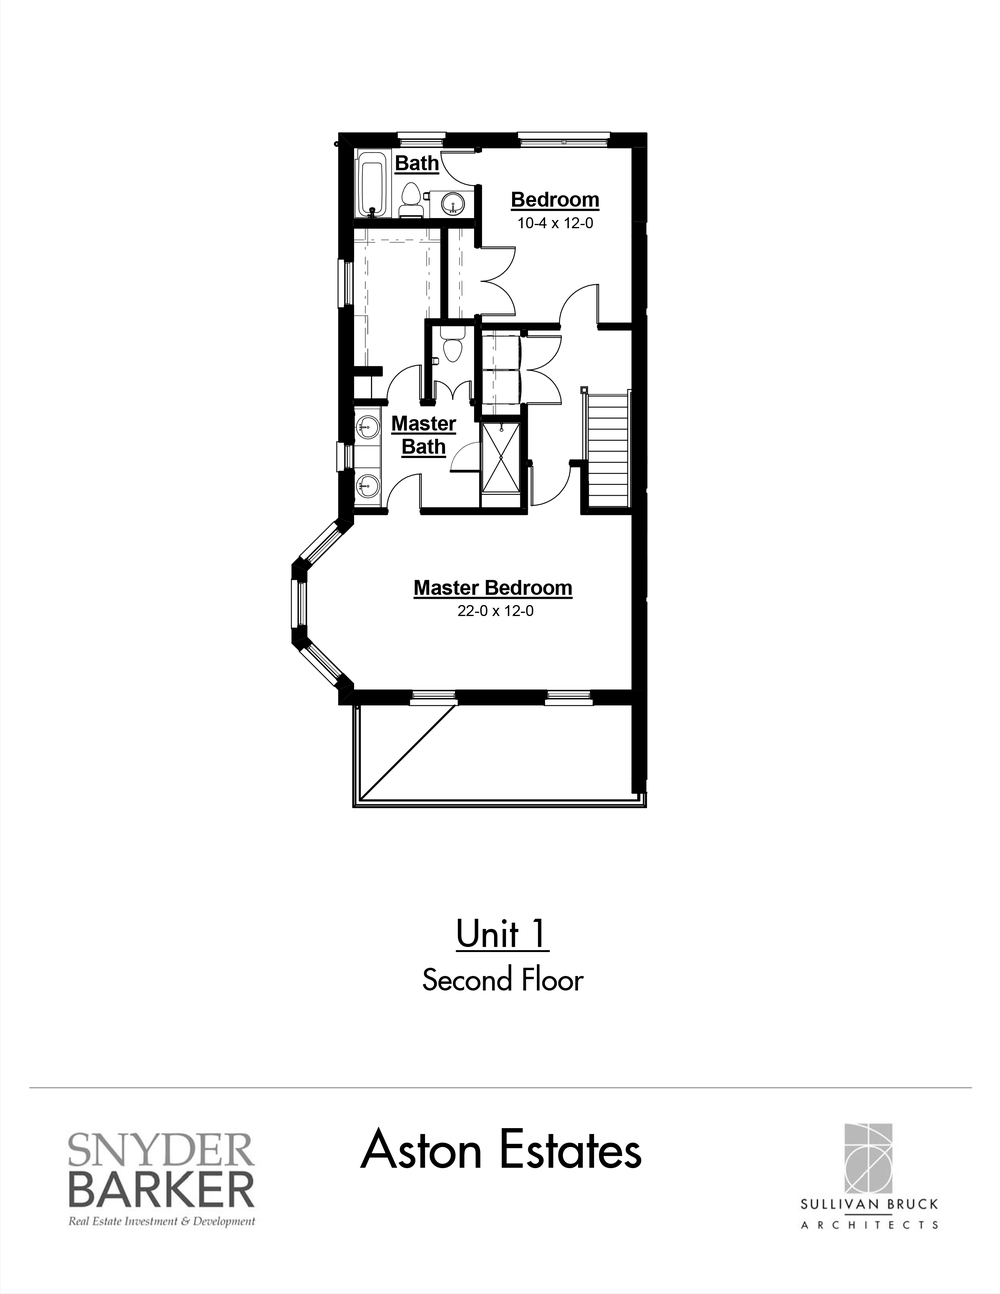 Aston_Estates_Unit_1_Second_Floor.jpg